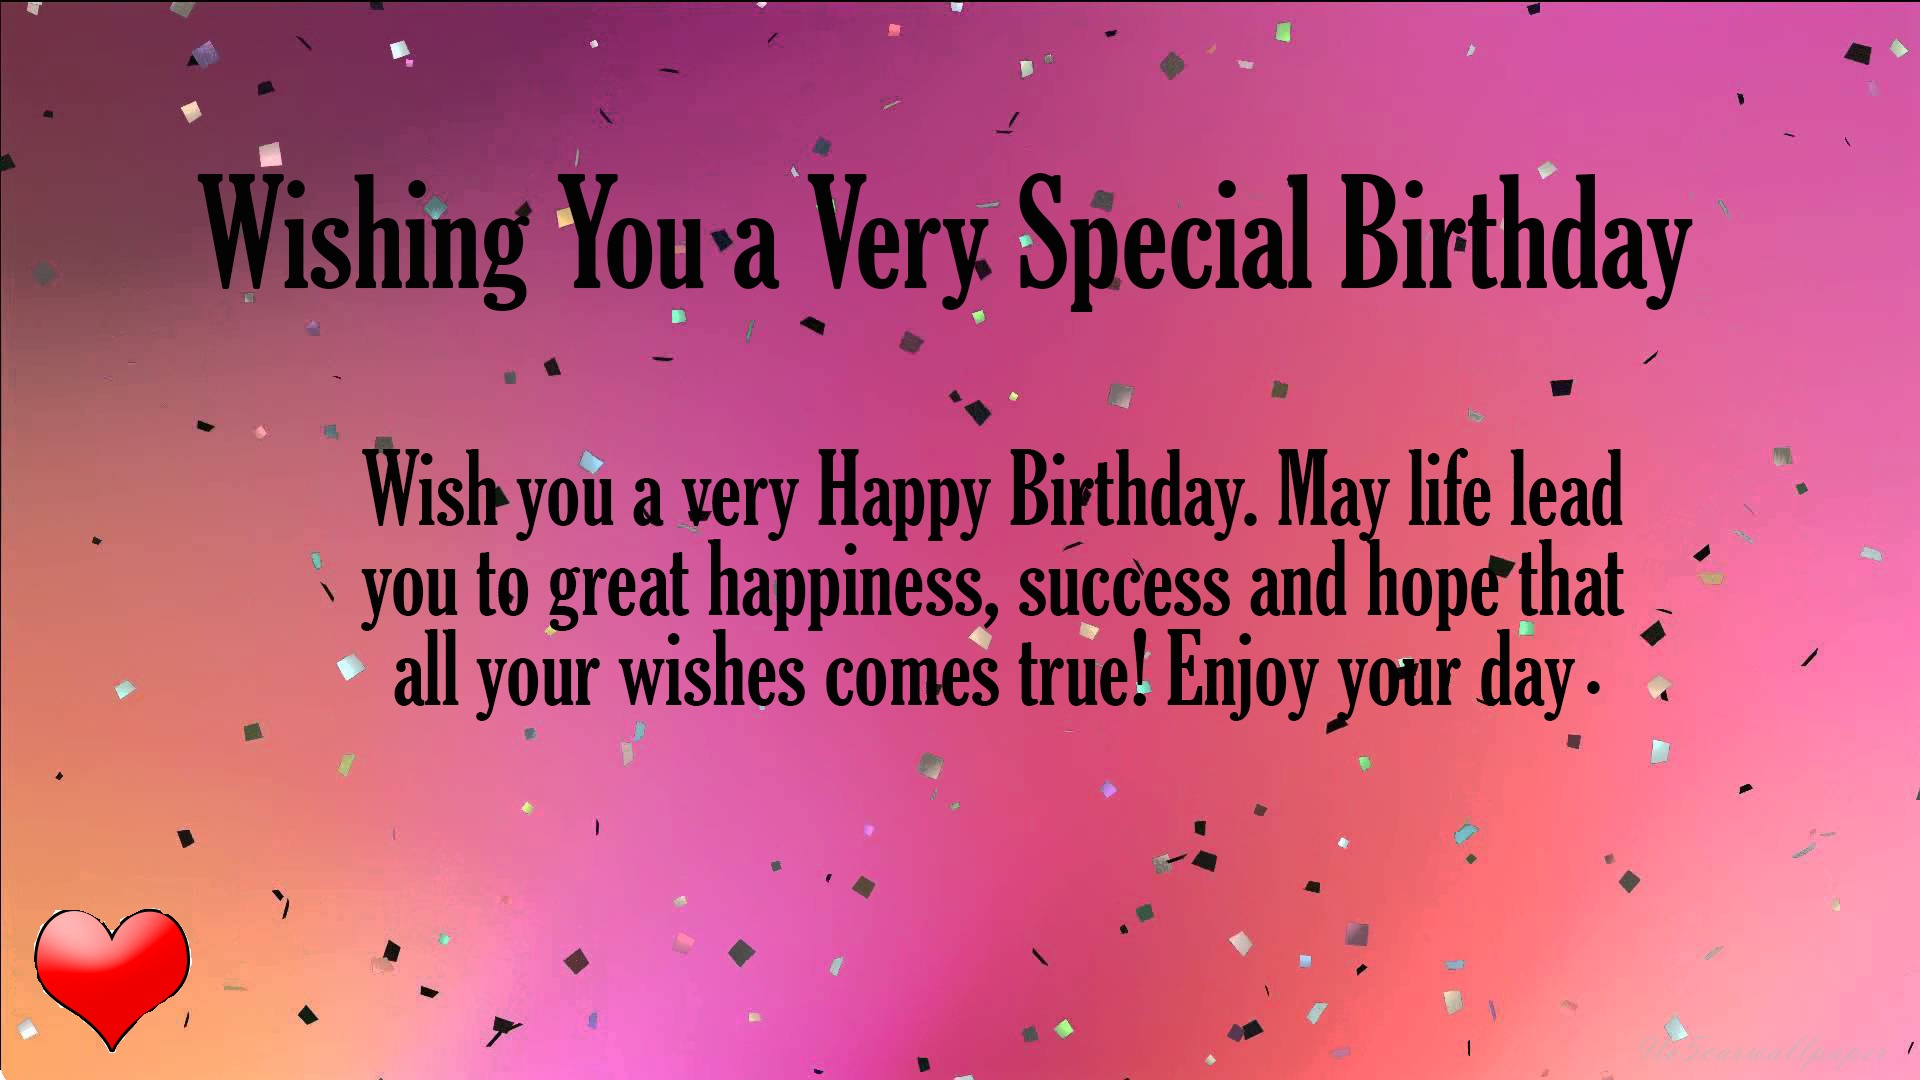 happy birthday images wishes message